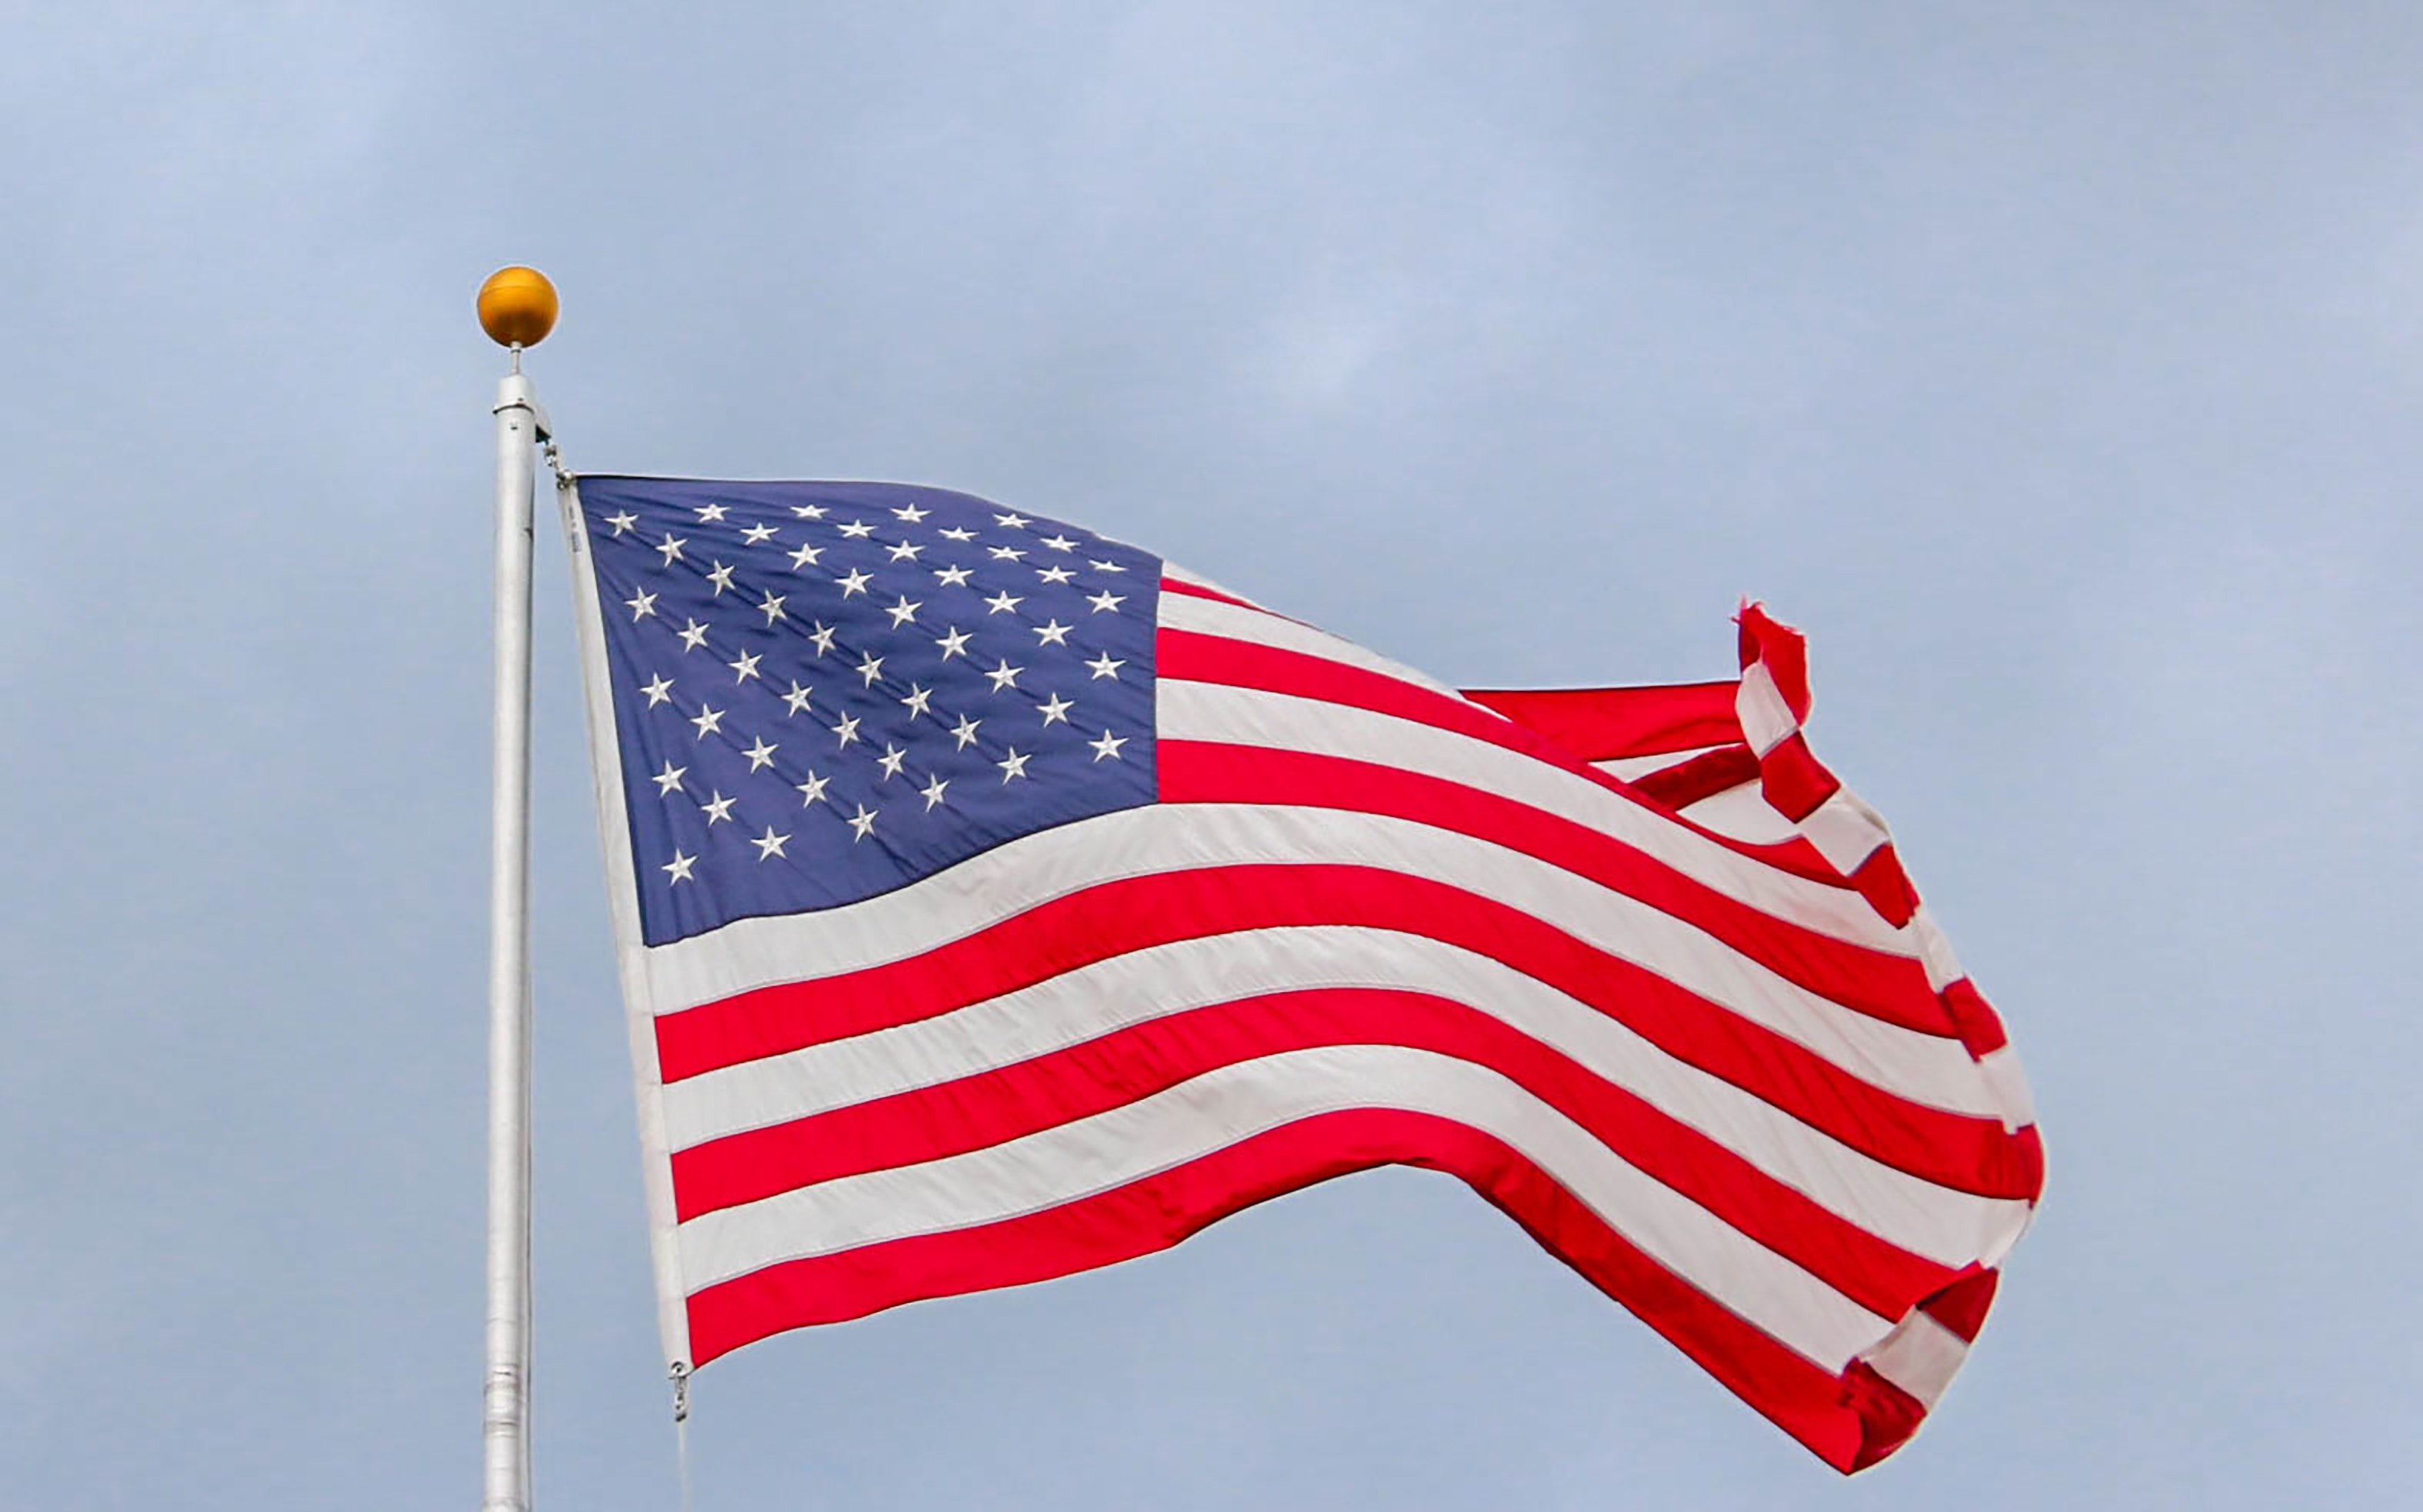 American Flag with Gold Ball Finial